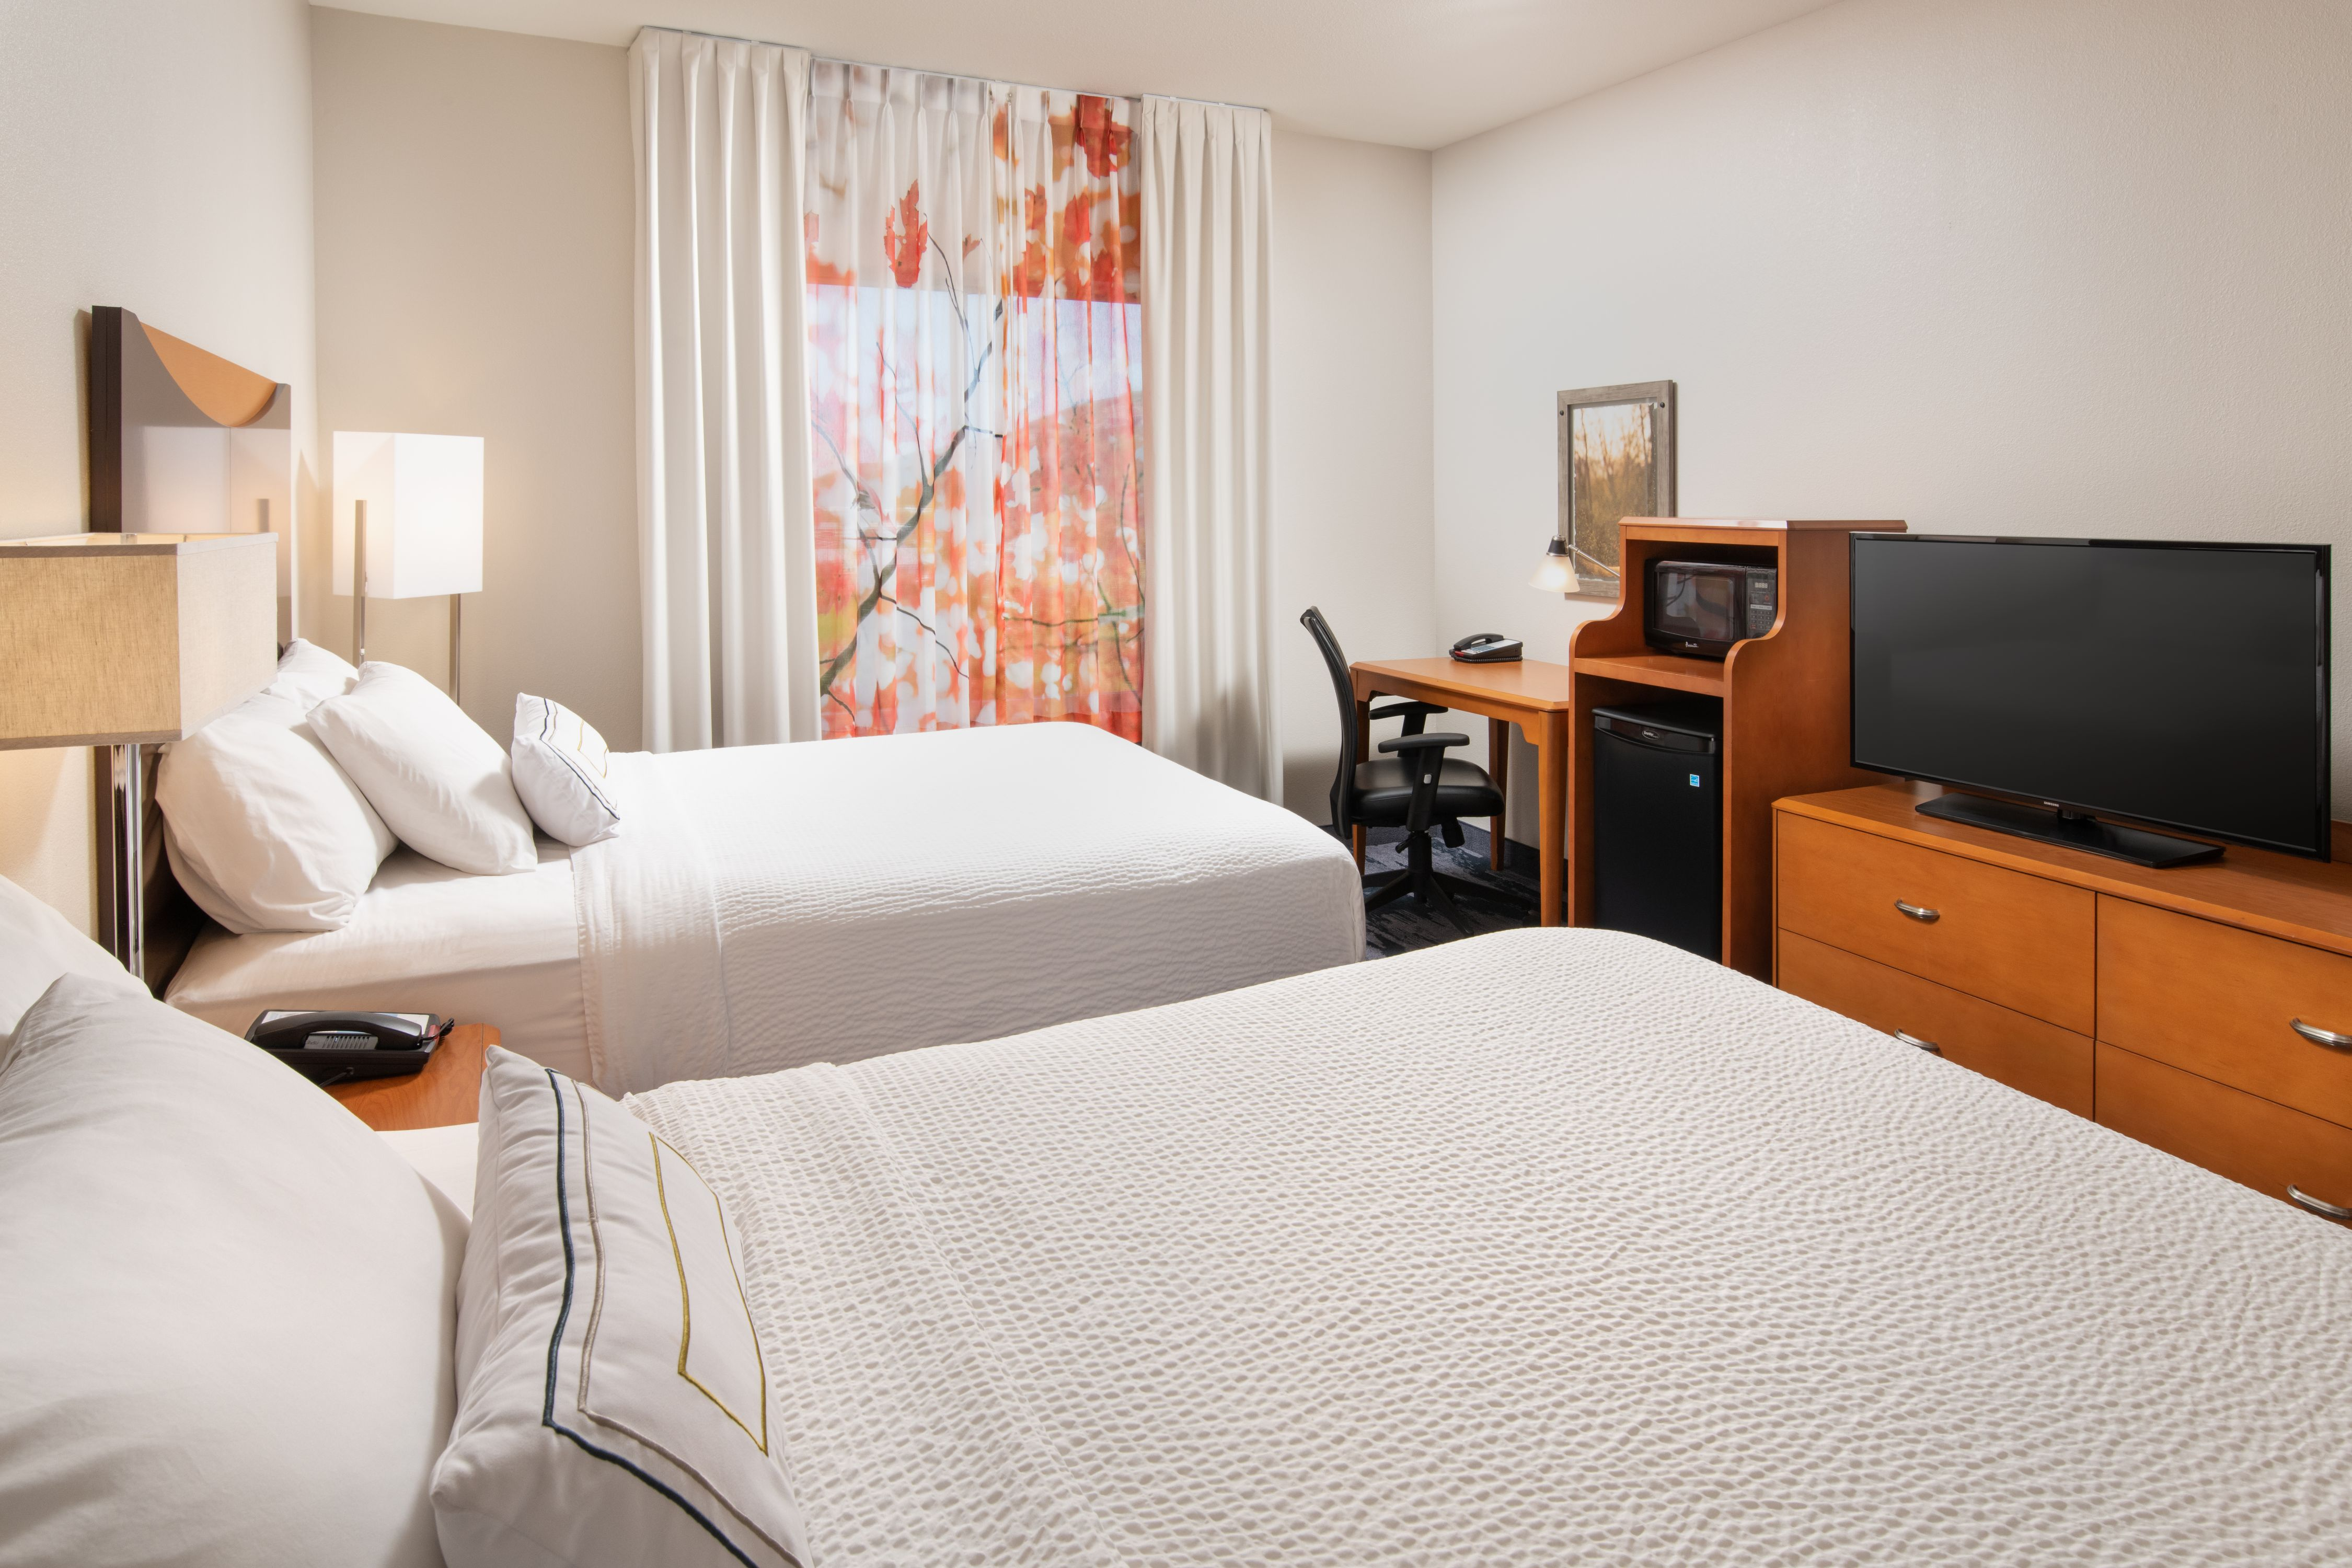 Fairfield Inn & Suites by Marriott Chattanooga I-24/Lookout Mountain image 16